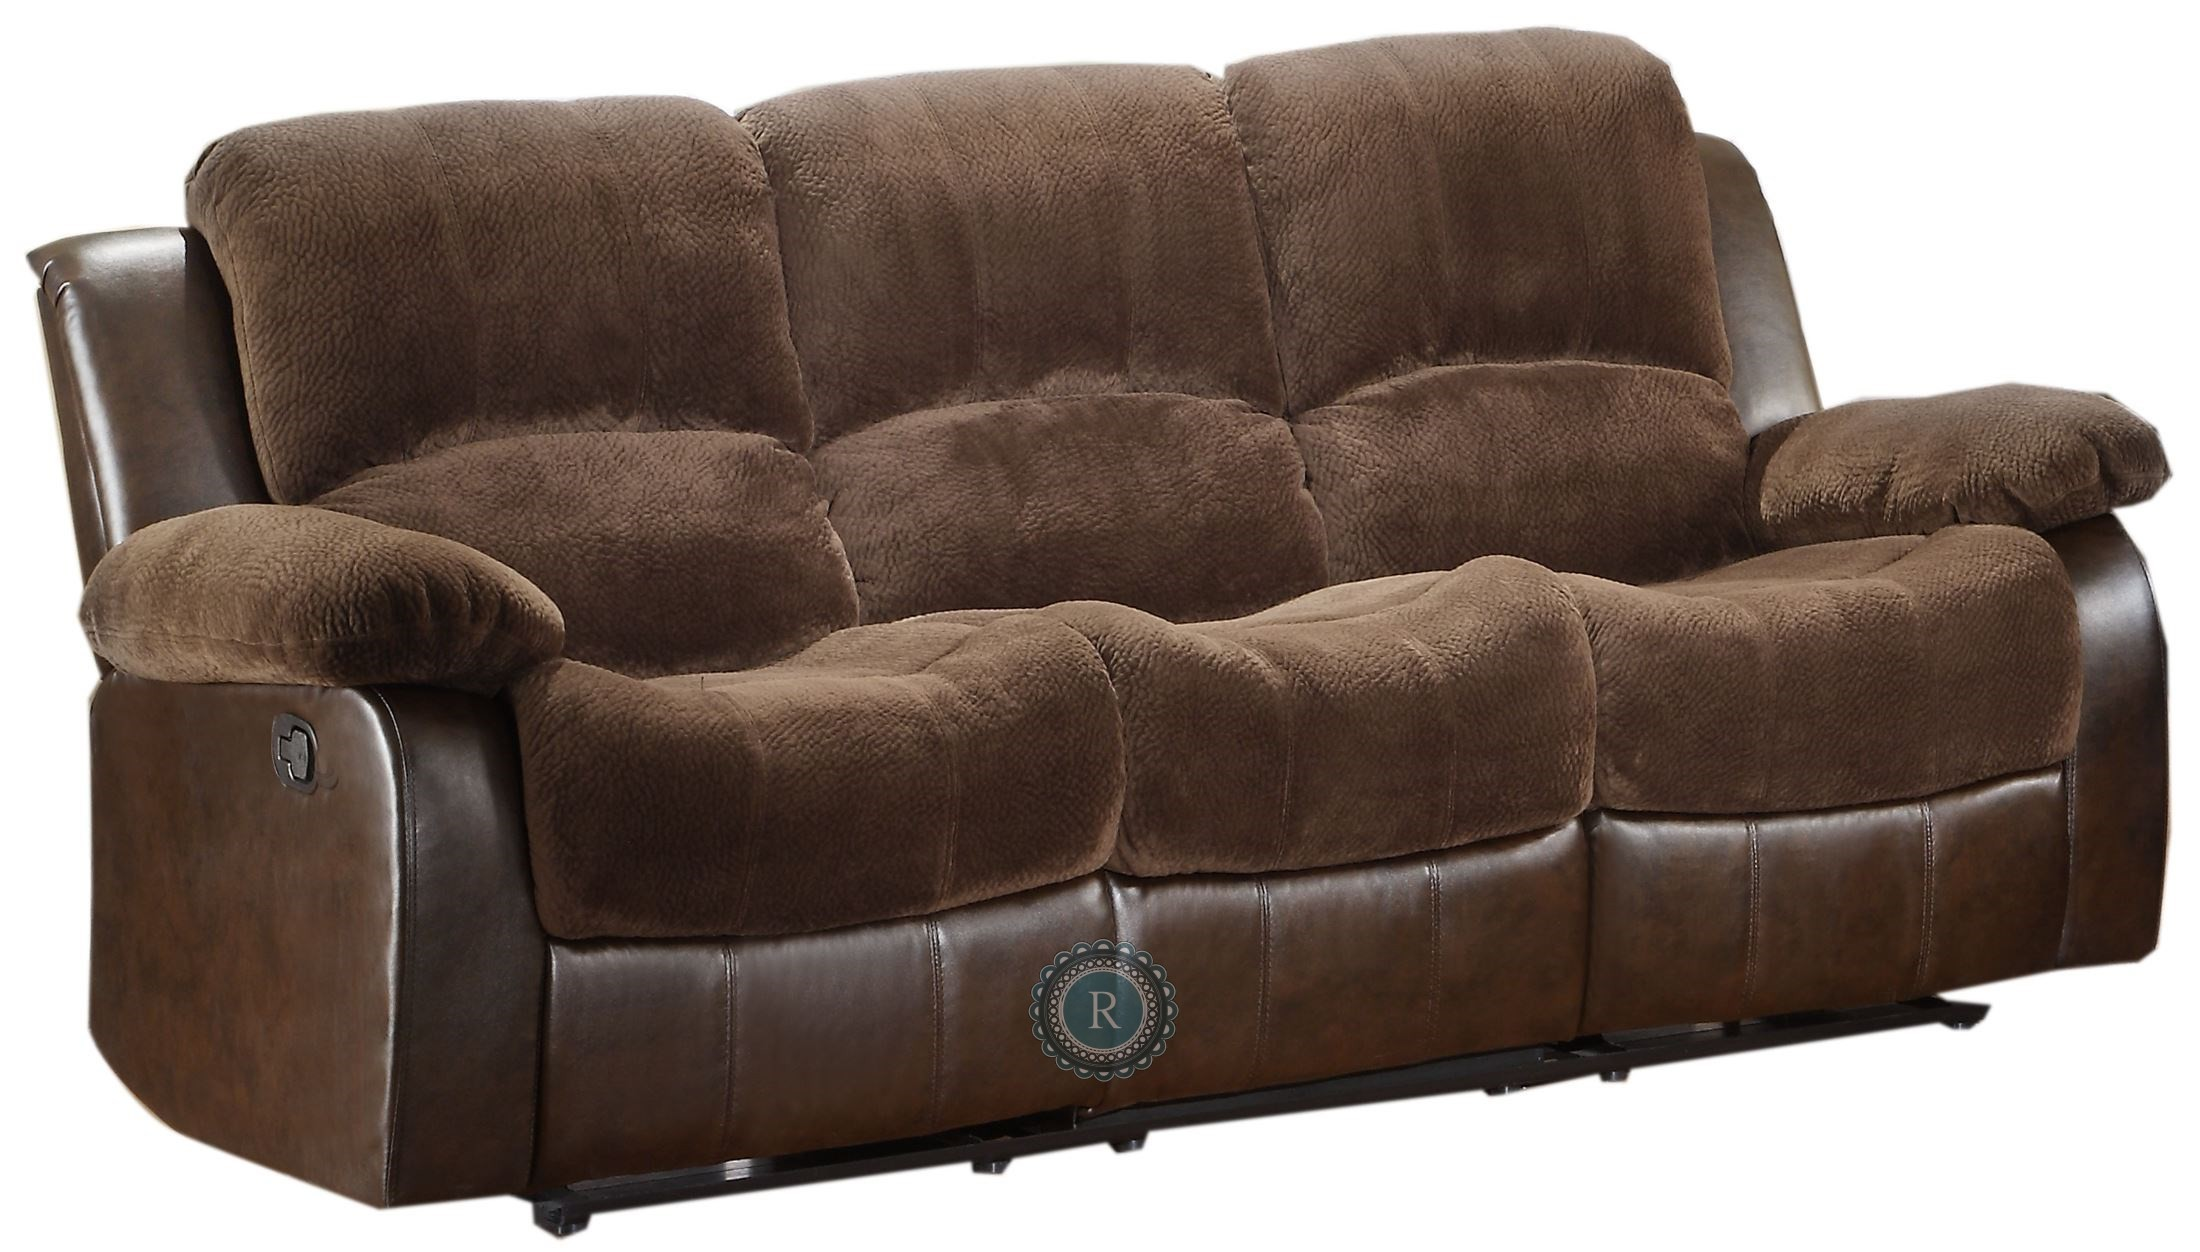 Cranley Dark Brown Double Reclining Sofa From Homelegance